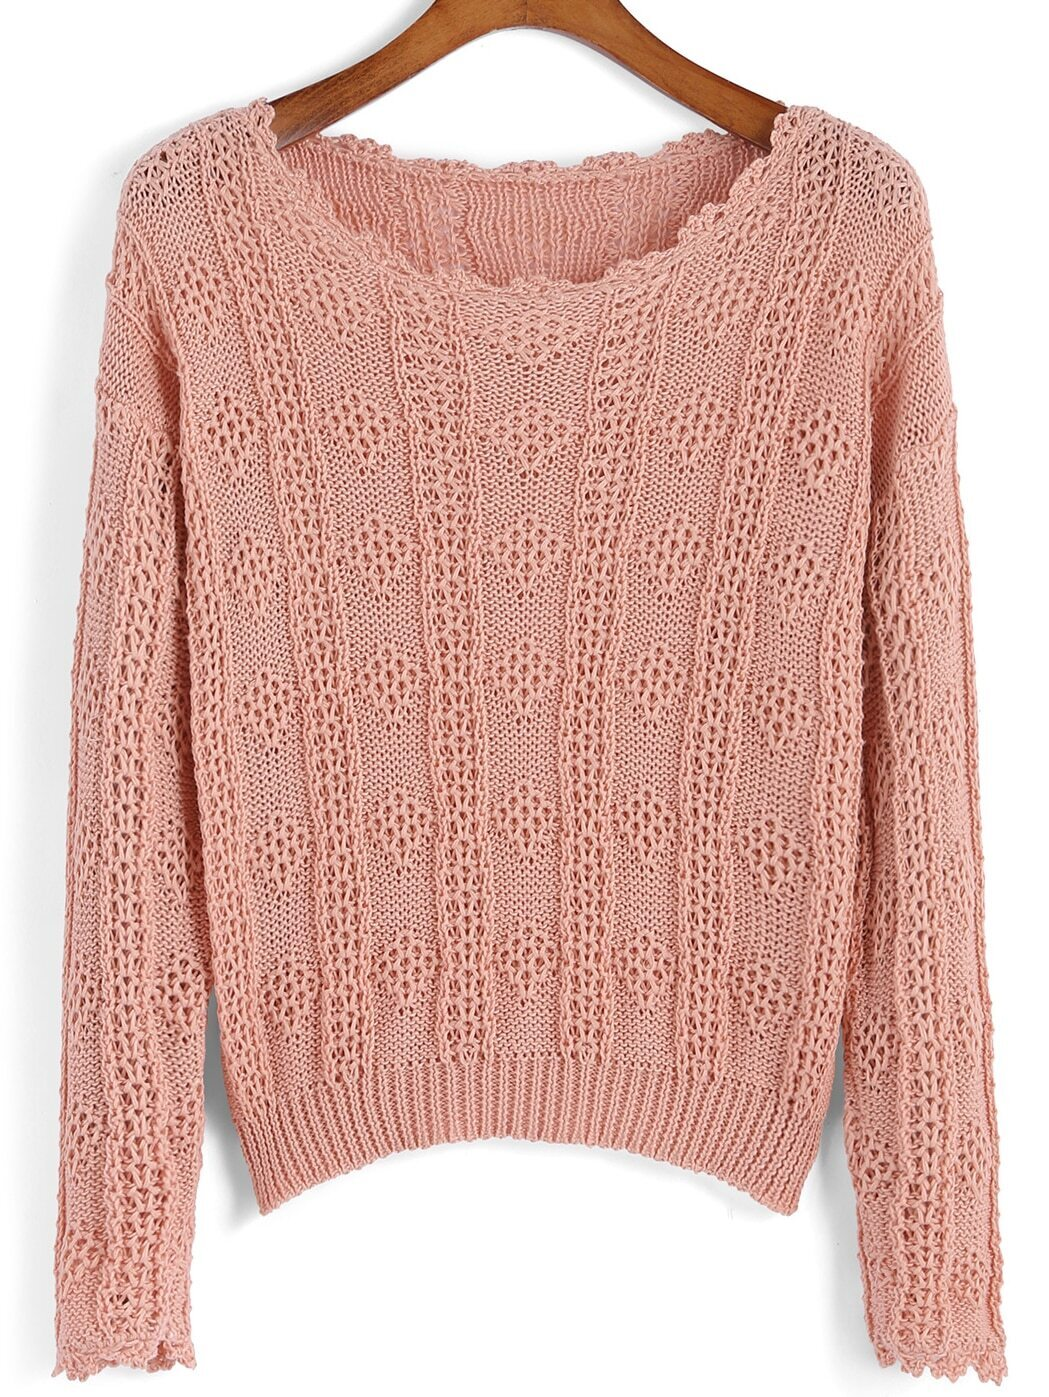 Knitting Sweaters In The Round : Round neck open knit sweaterfor women romwe